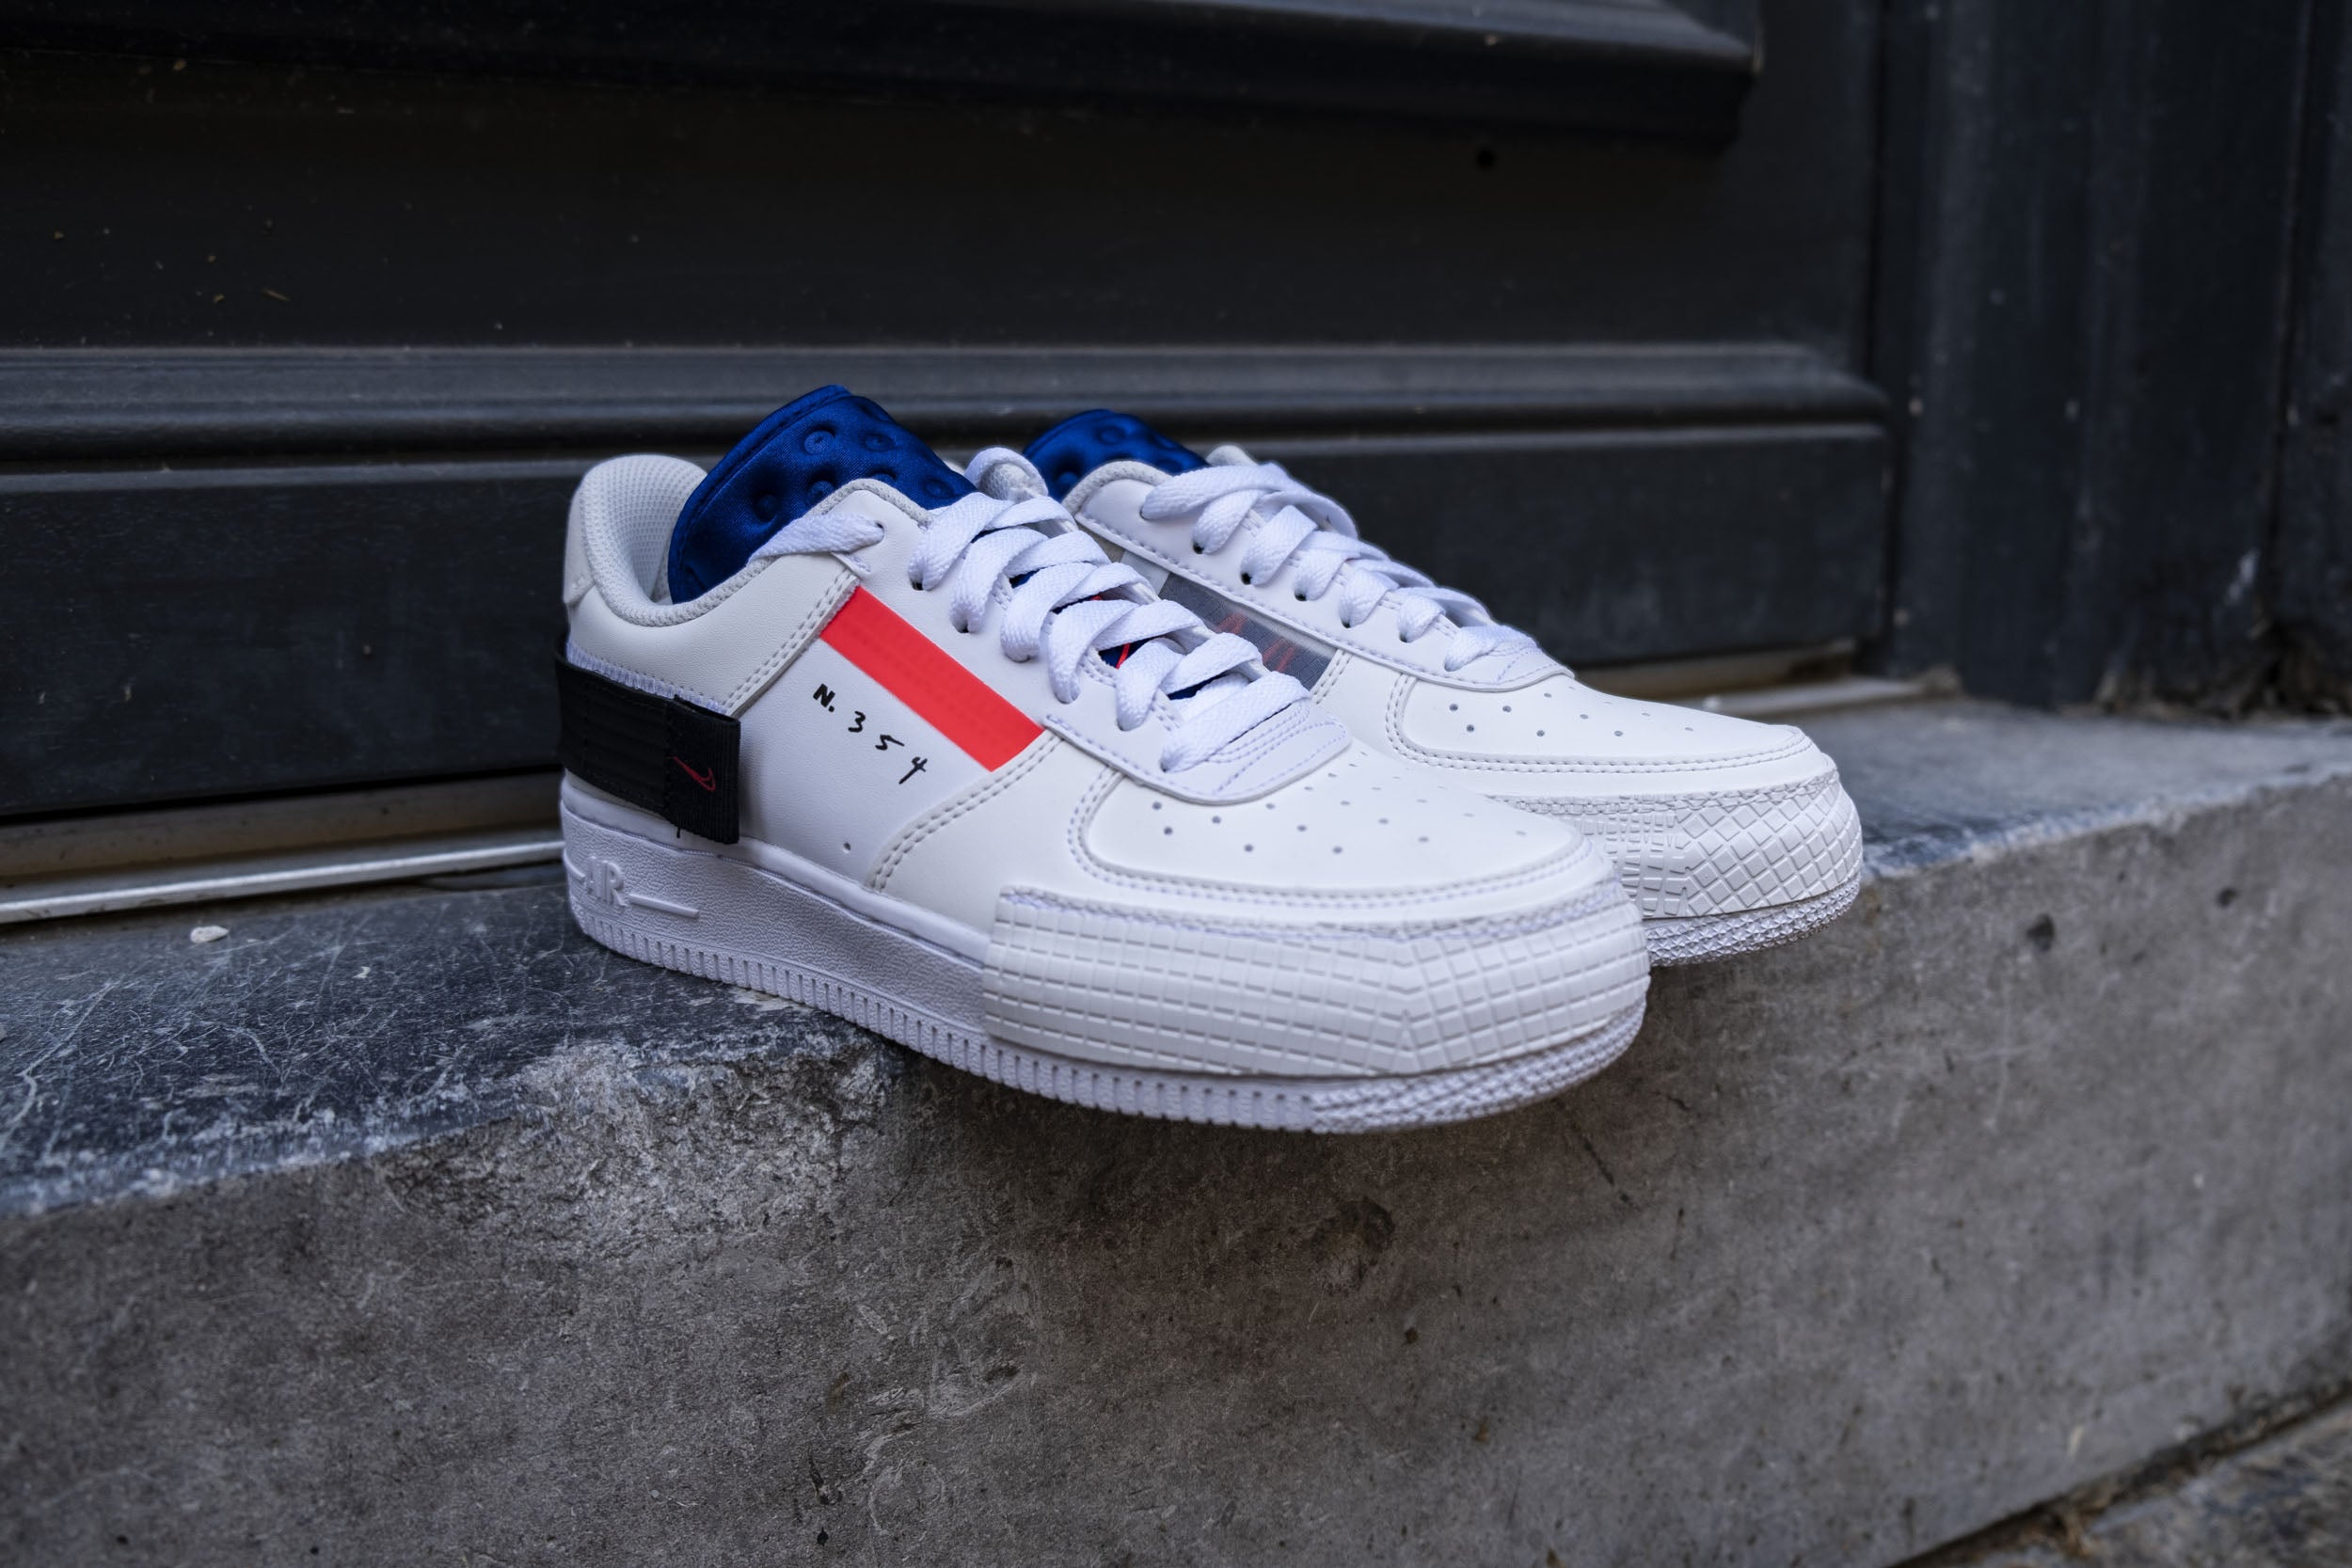 Nike Air Force 1 Low Drop Type La Boite Collector sneakers